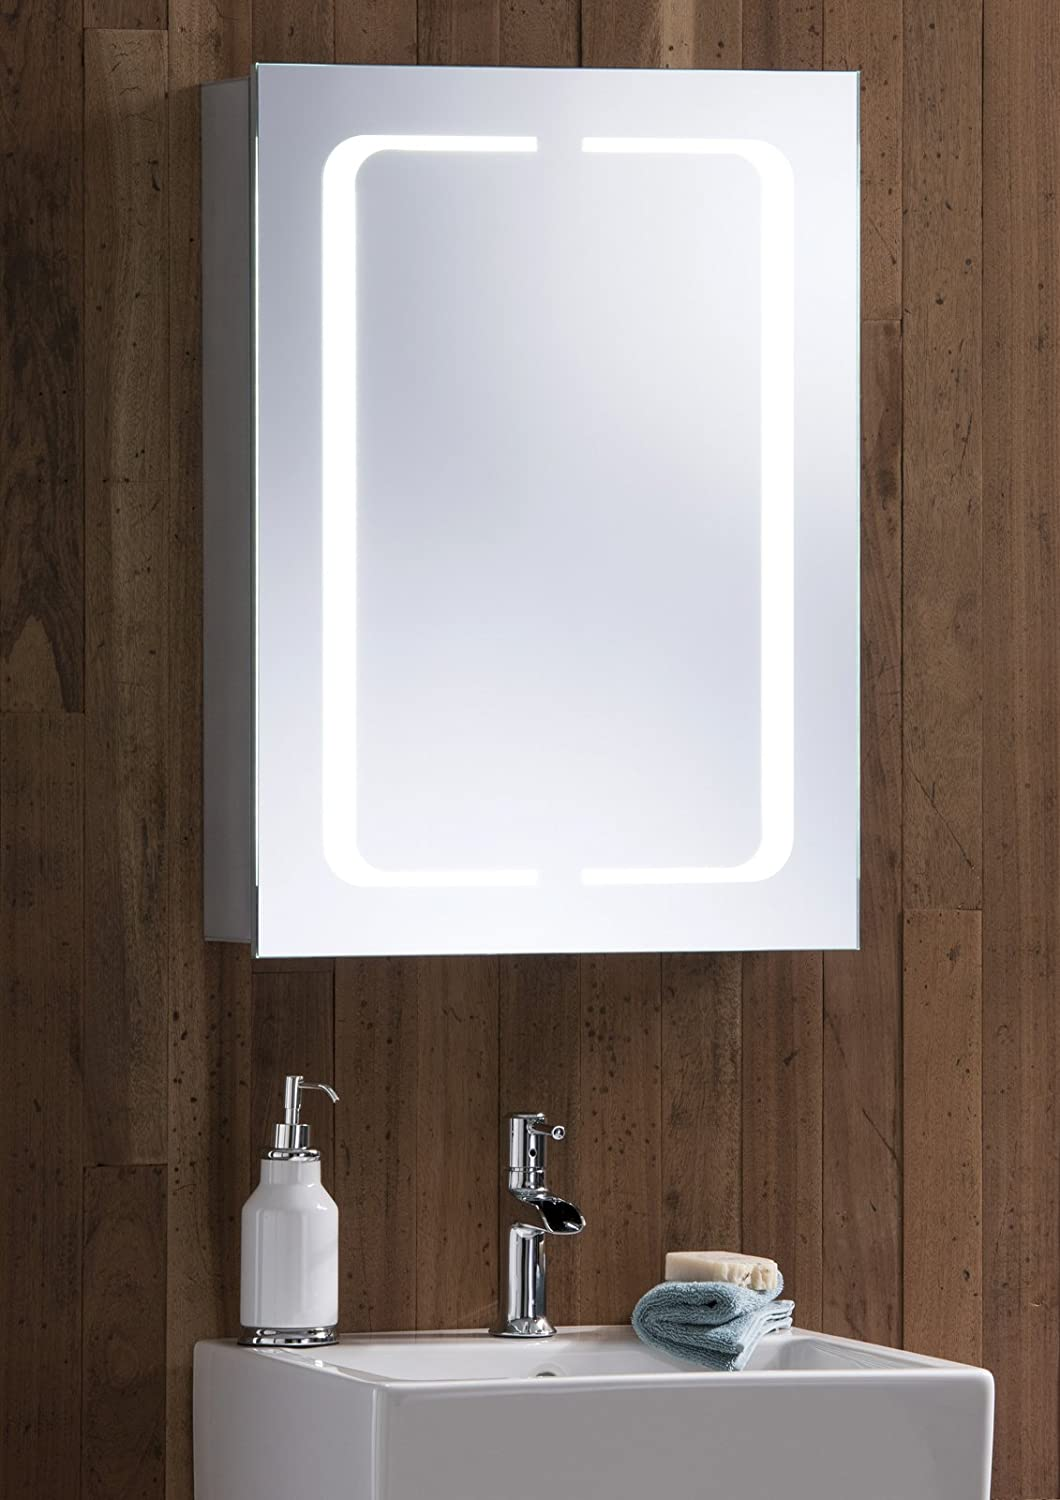 60 led demister illuminated bathroom cabinet mirror with for Bathroom cabinets led